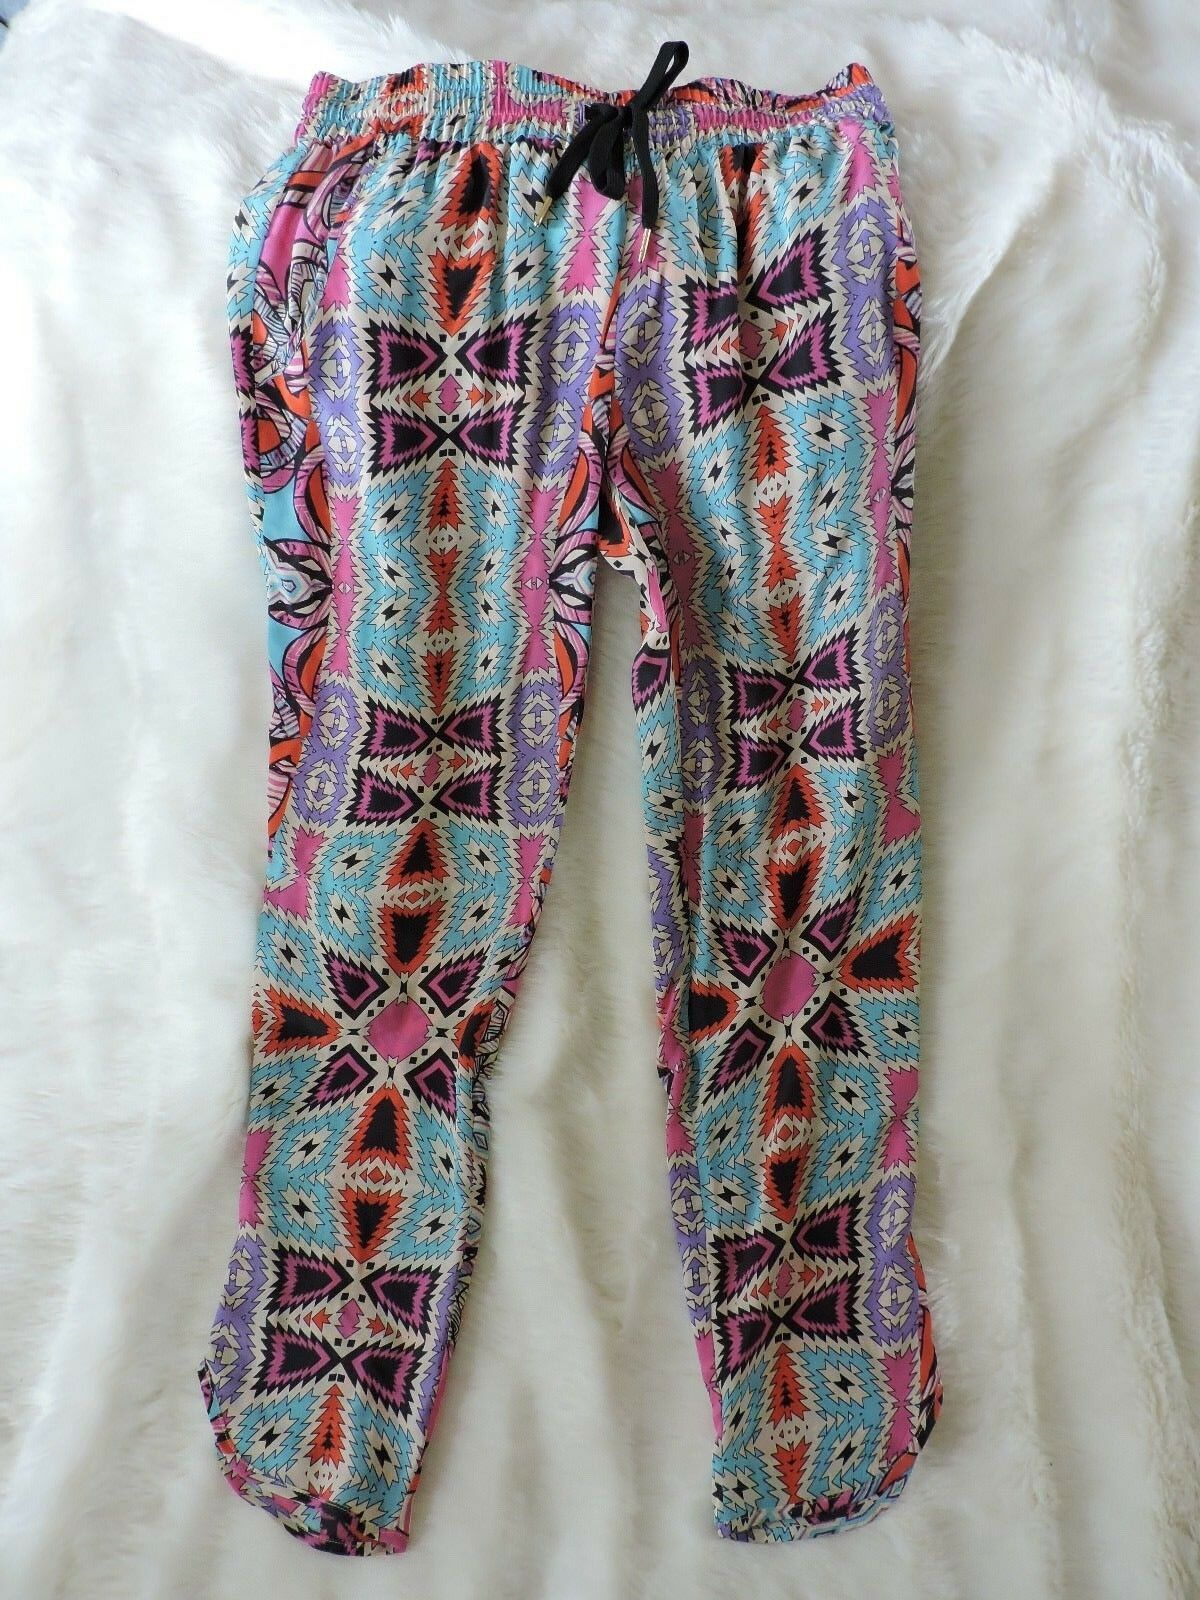 NWT LEIFNOTES ARTISTIC COLOR POP SILK MOSAIC ANKLE PANTS 2 (XS Anthropologie tag